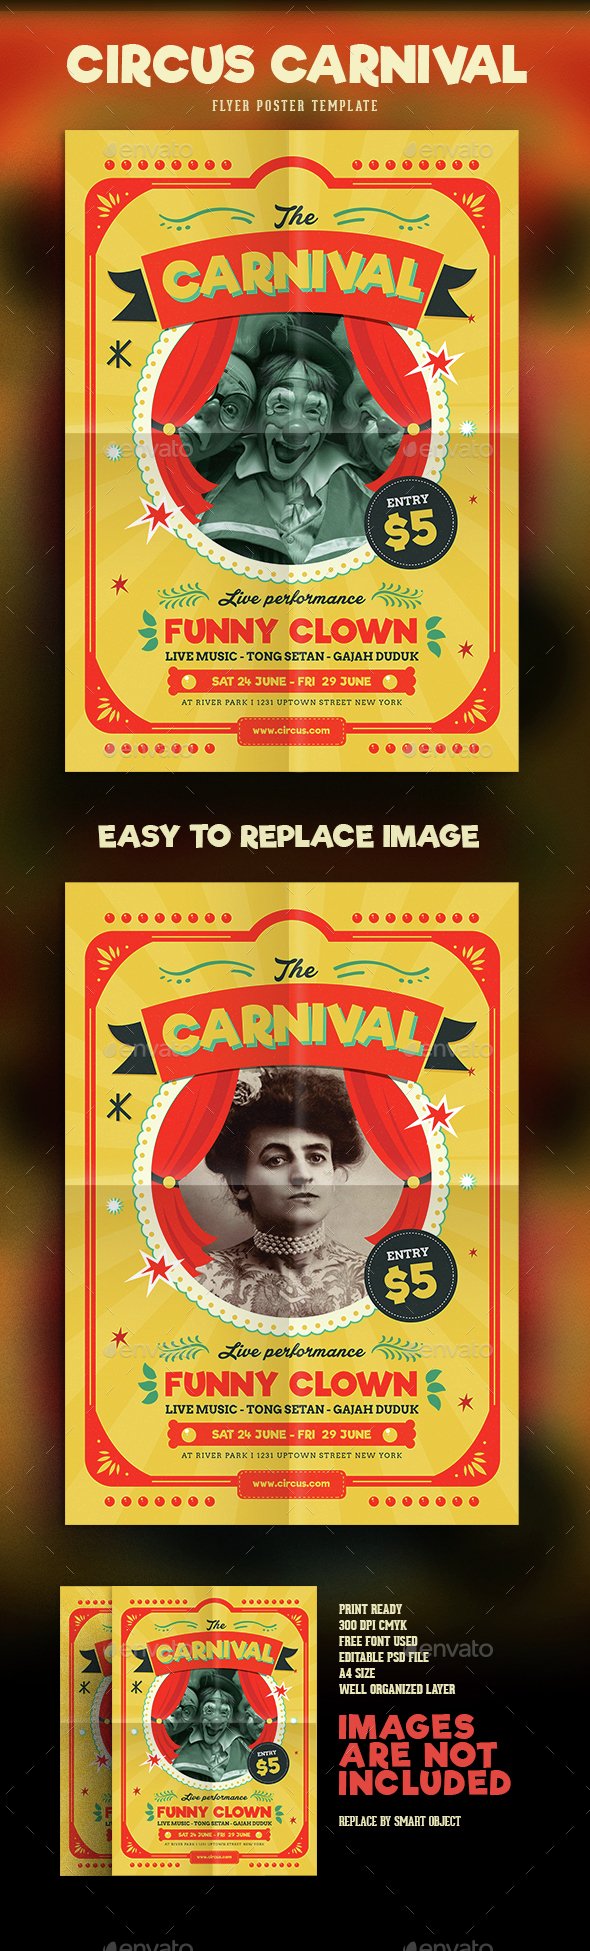 Sideshow Graphics Designs Templates From GraphicRiver